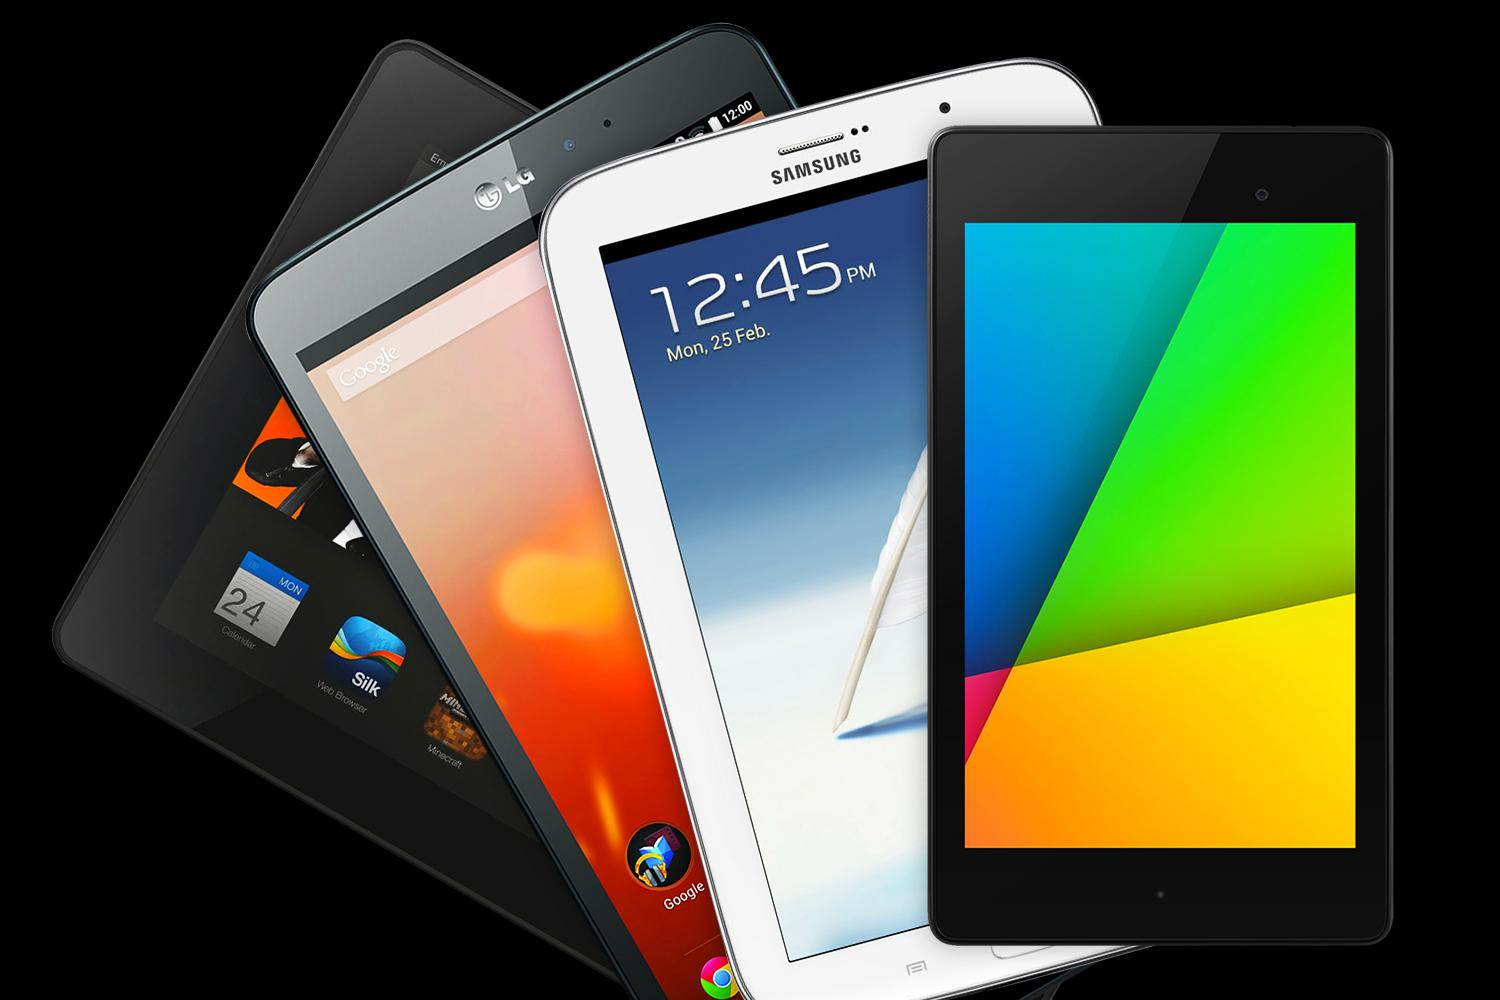 best tablet nexus 7 vs kindle fire hdx vs g pad vs galaxy note 8 digital trends. Black Bedroom Furniture Sets. Home Design Ideas